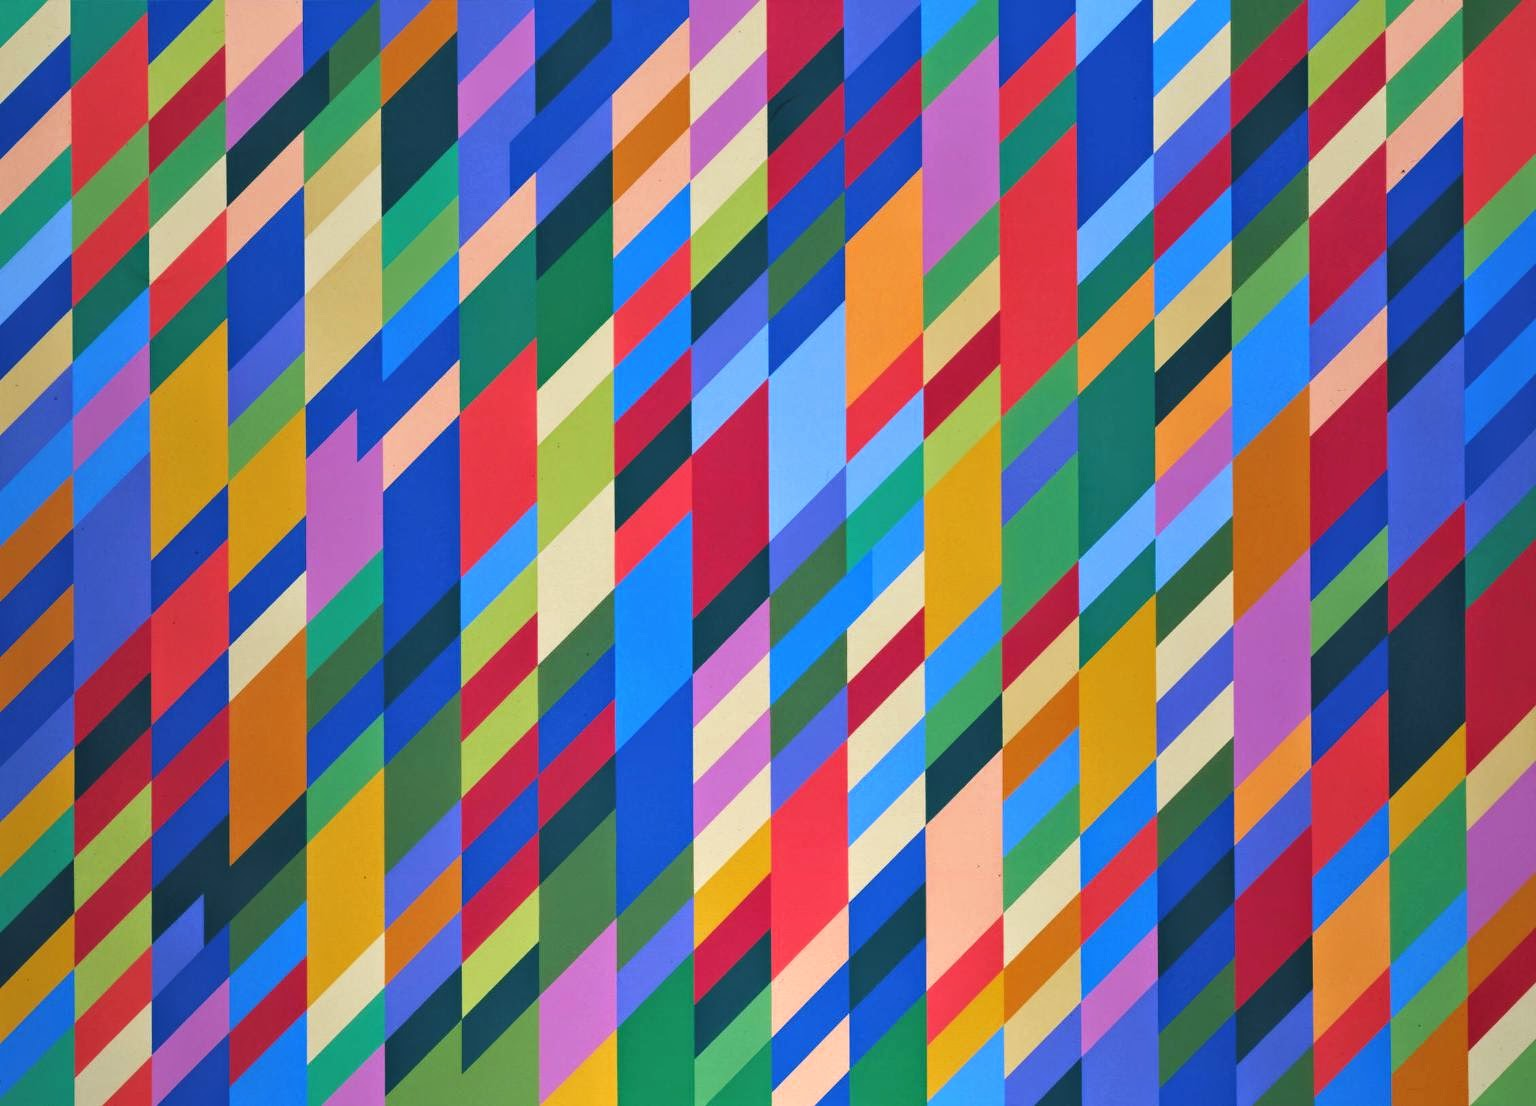 Design in the Visual Arts: Repetition and Rhythm